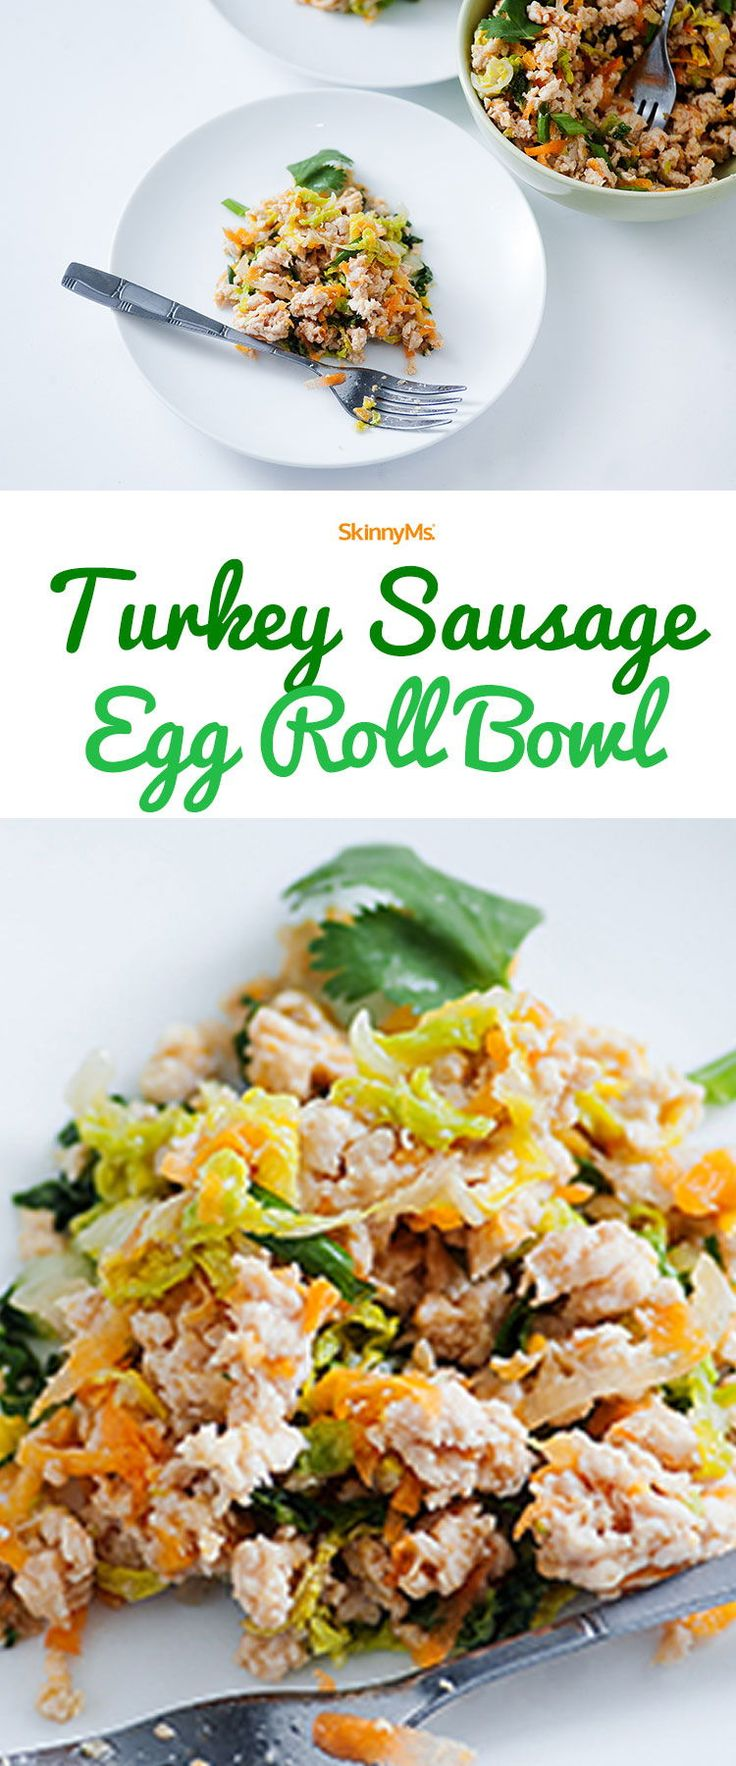 This Turkey Sausage Egg Roll Bowl is low in calories and high in protein! #powerbowl #recipe #turkey #healthy